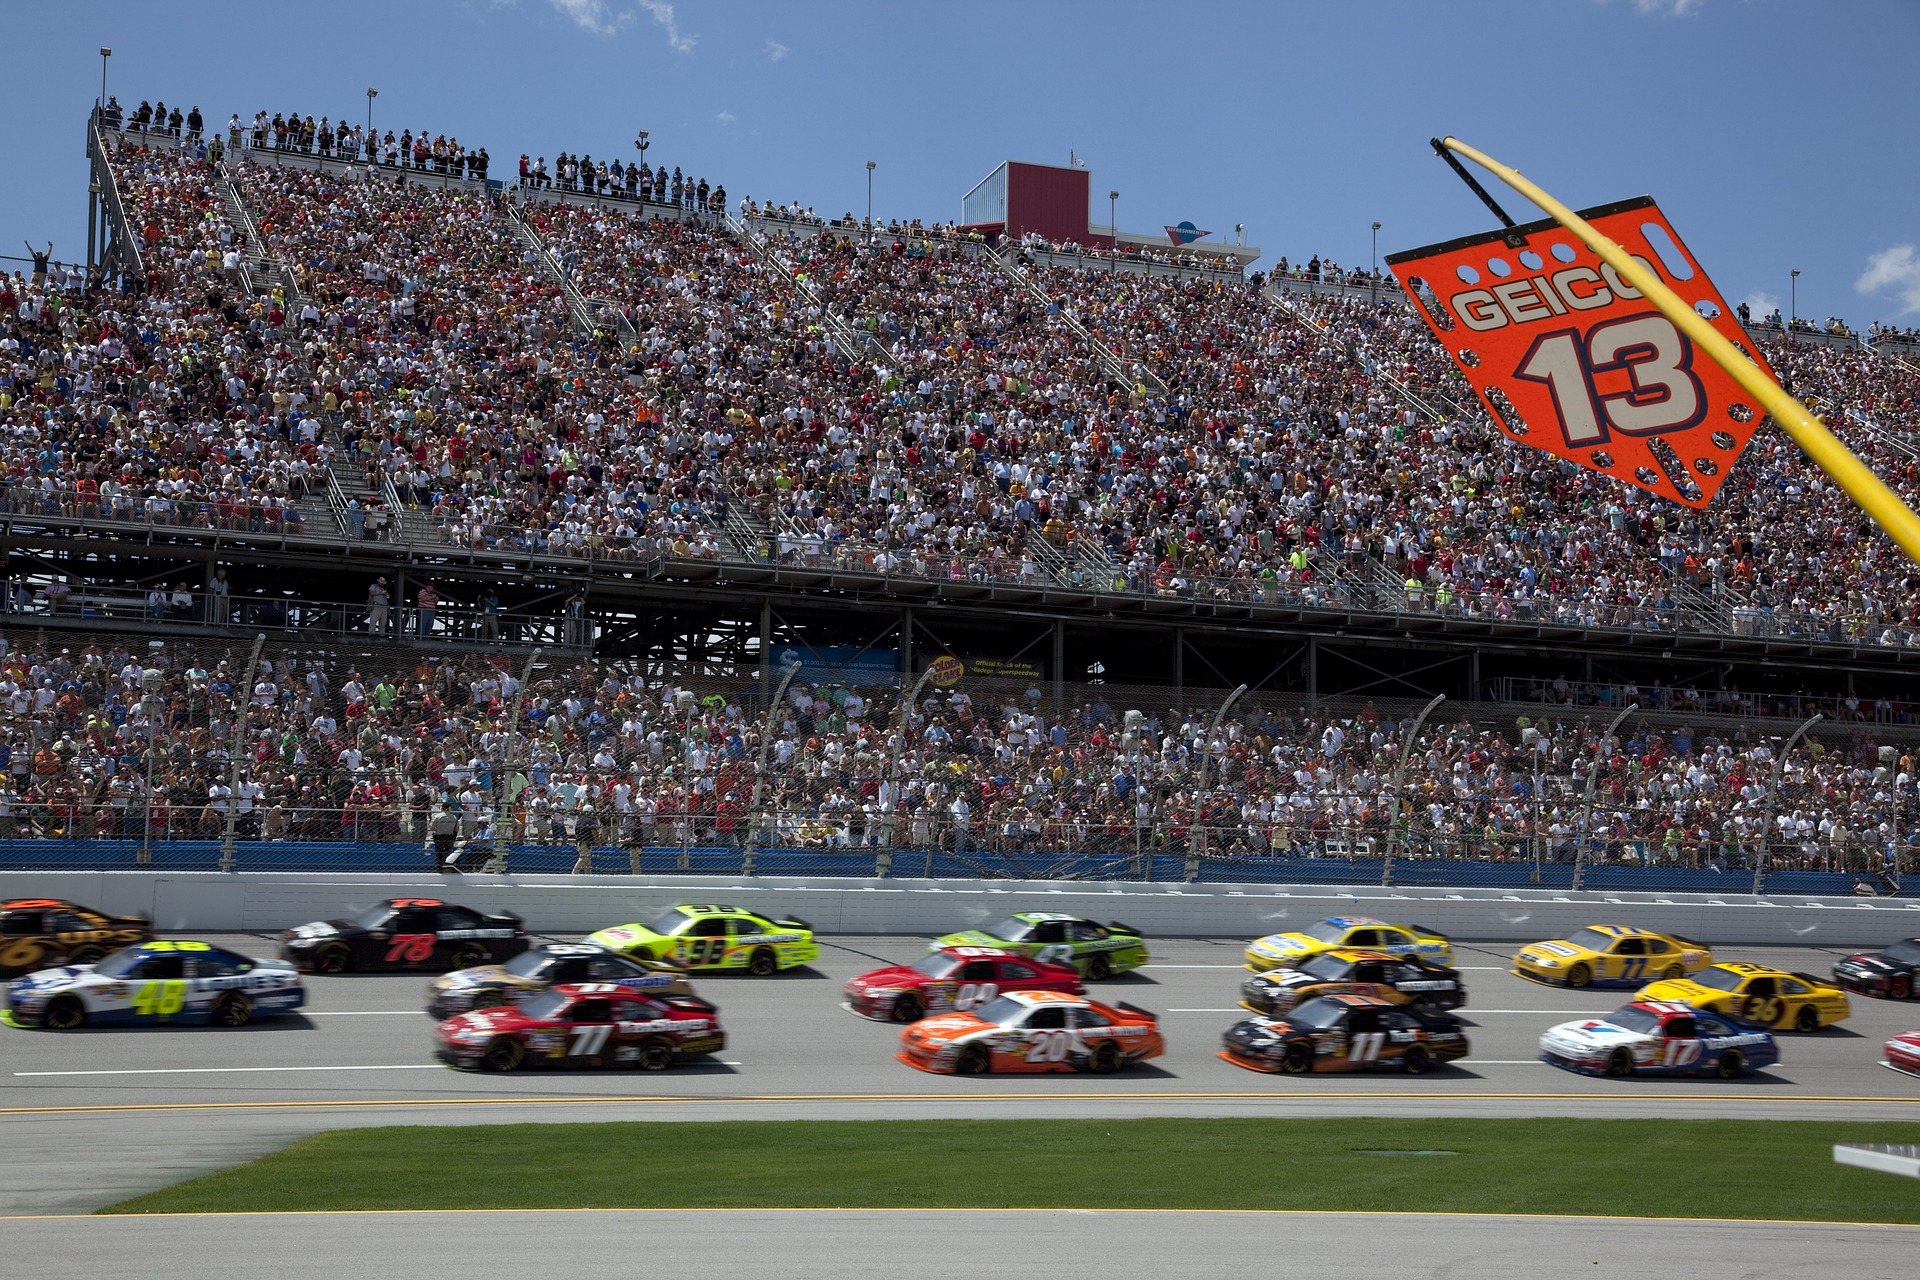 Covering NASCAR's ties to the Confederate flag and conservative politics: 5 tips for journalists